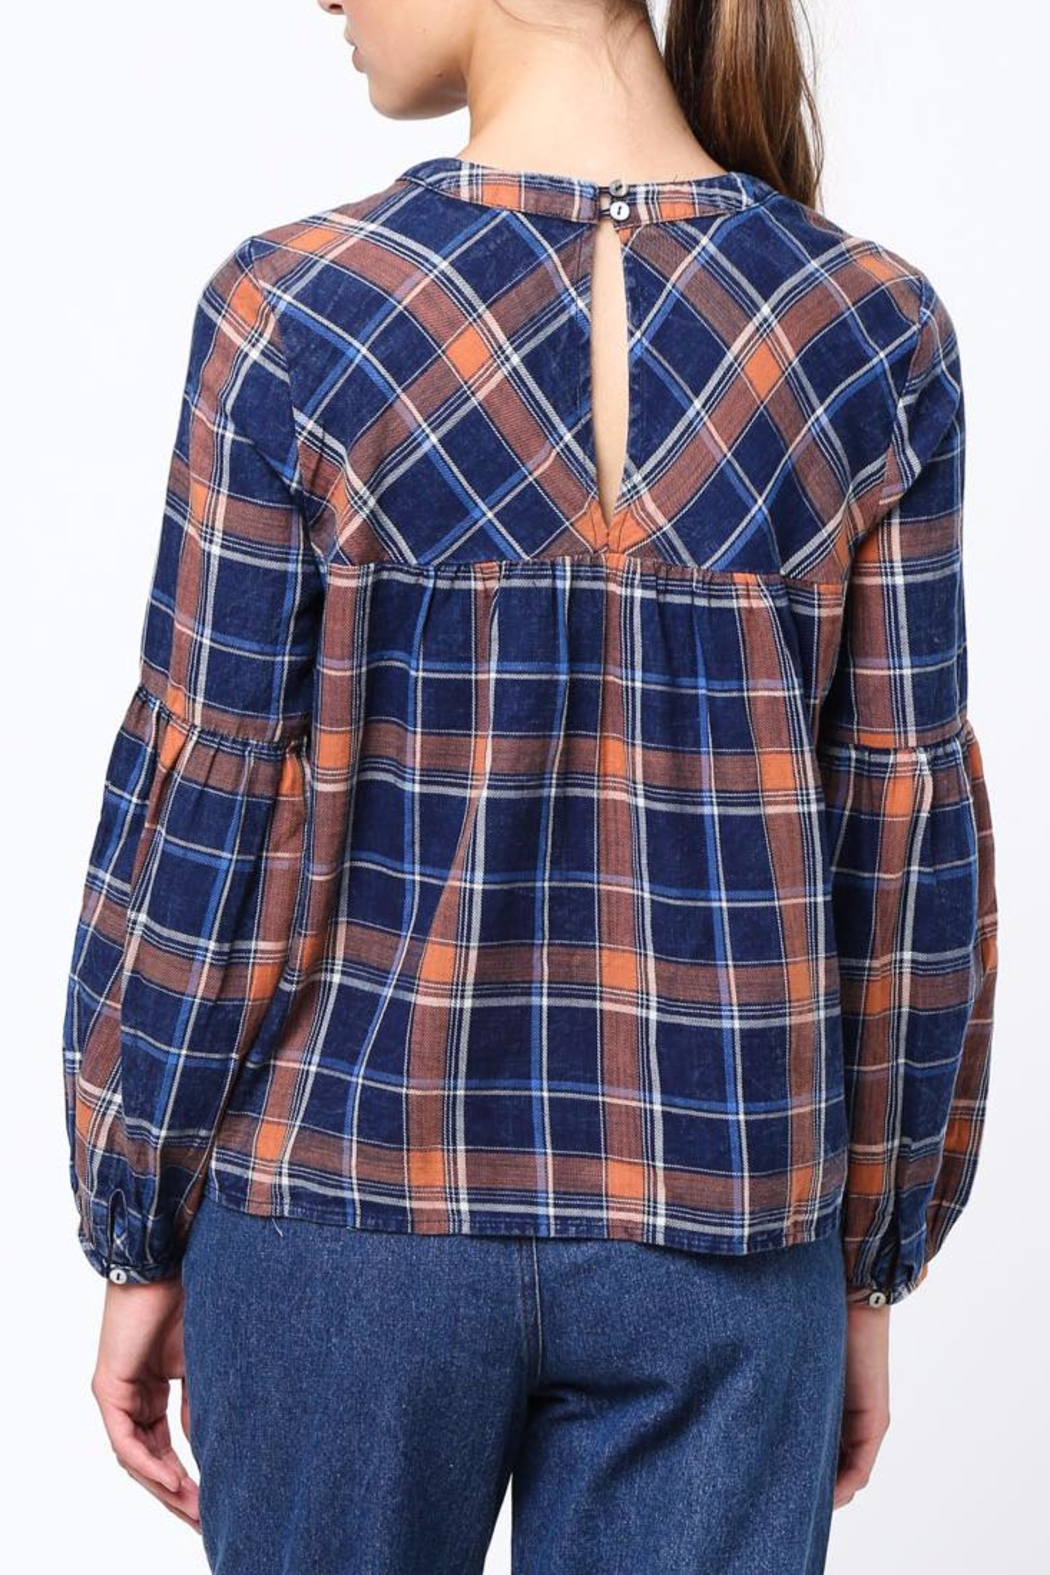 Movint Shirring Detailed Plaid Top - Front Full Image